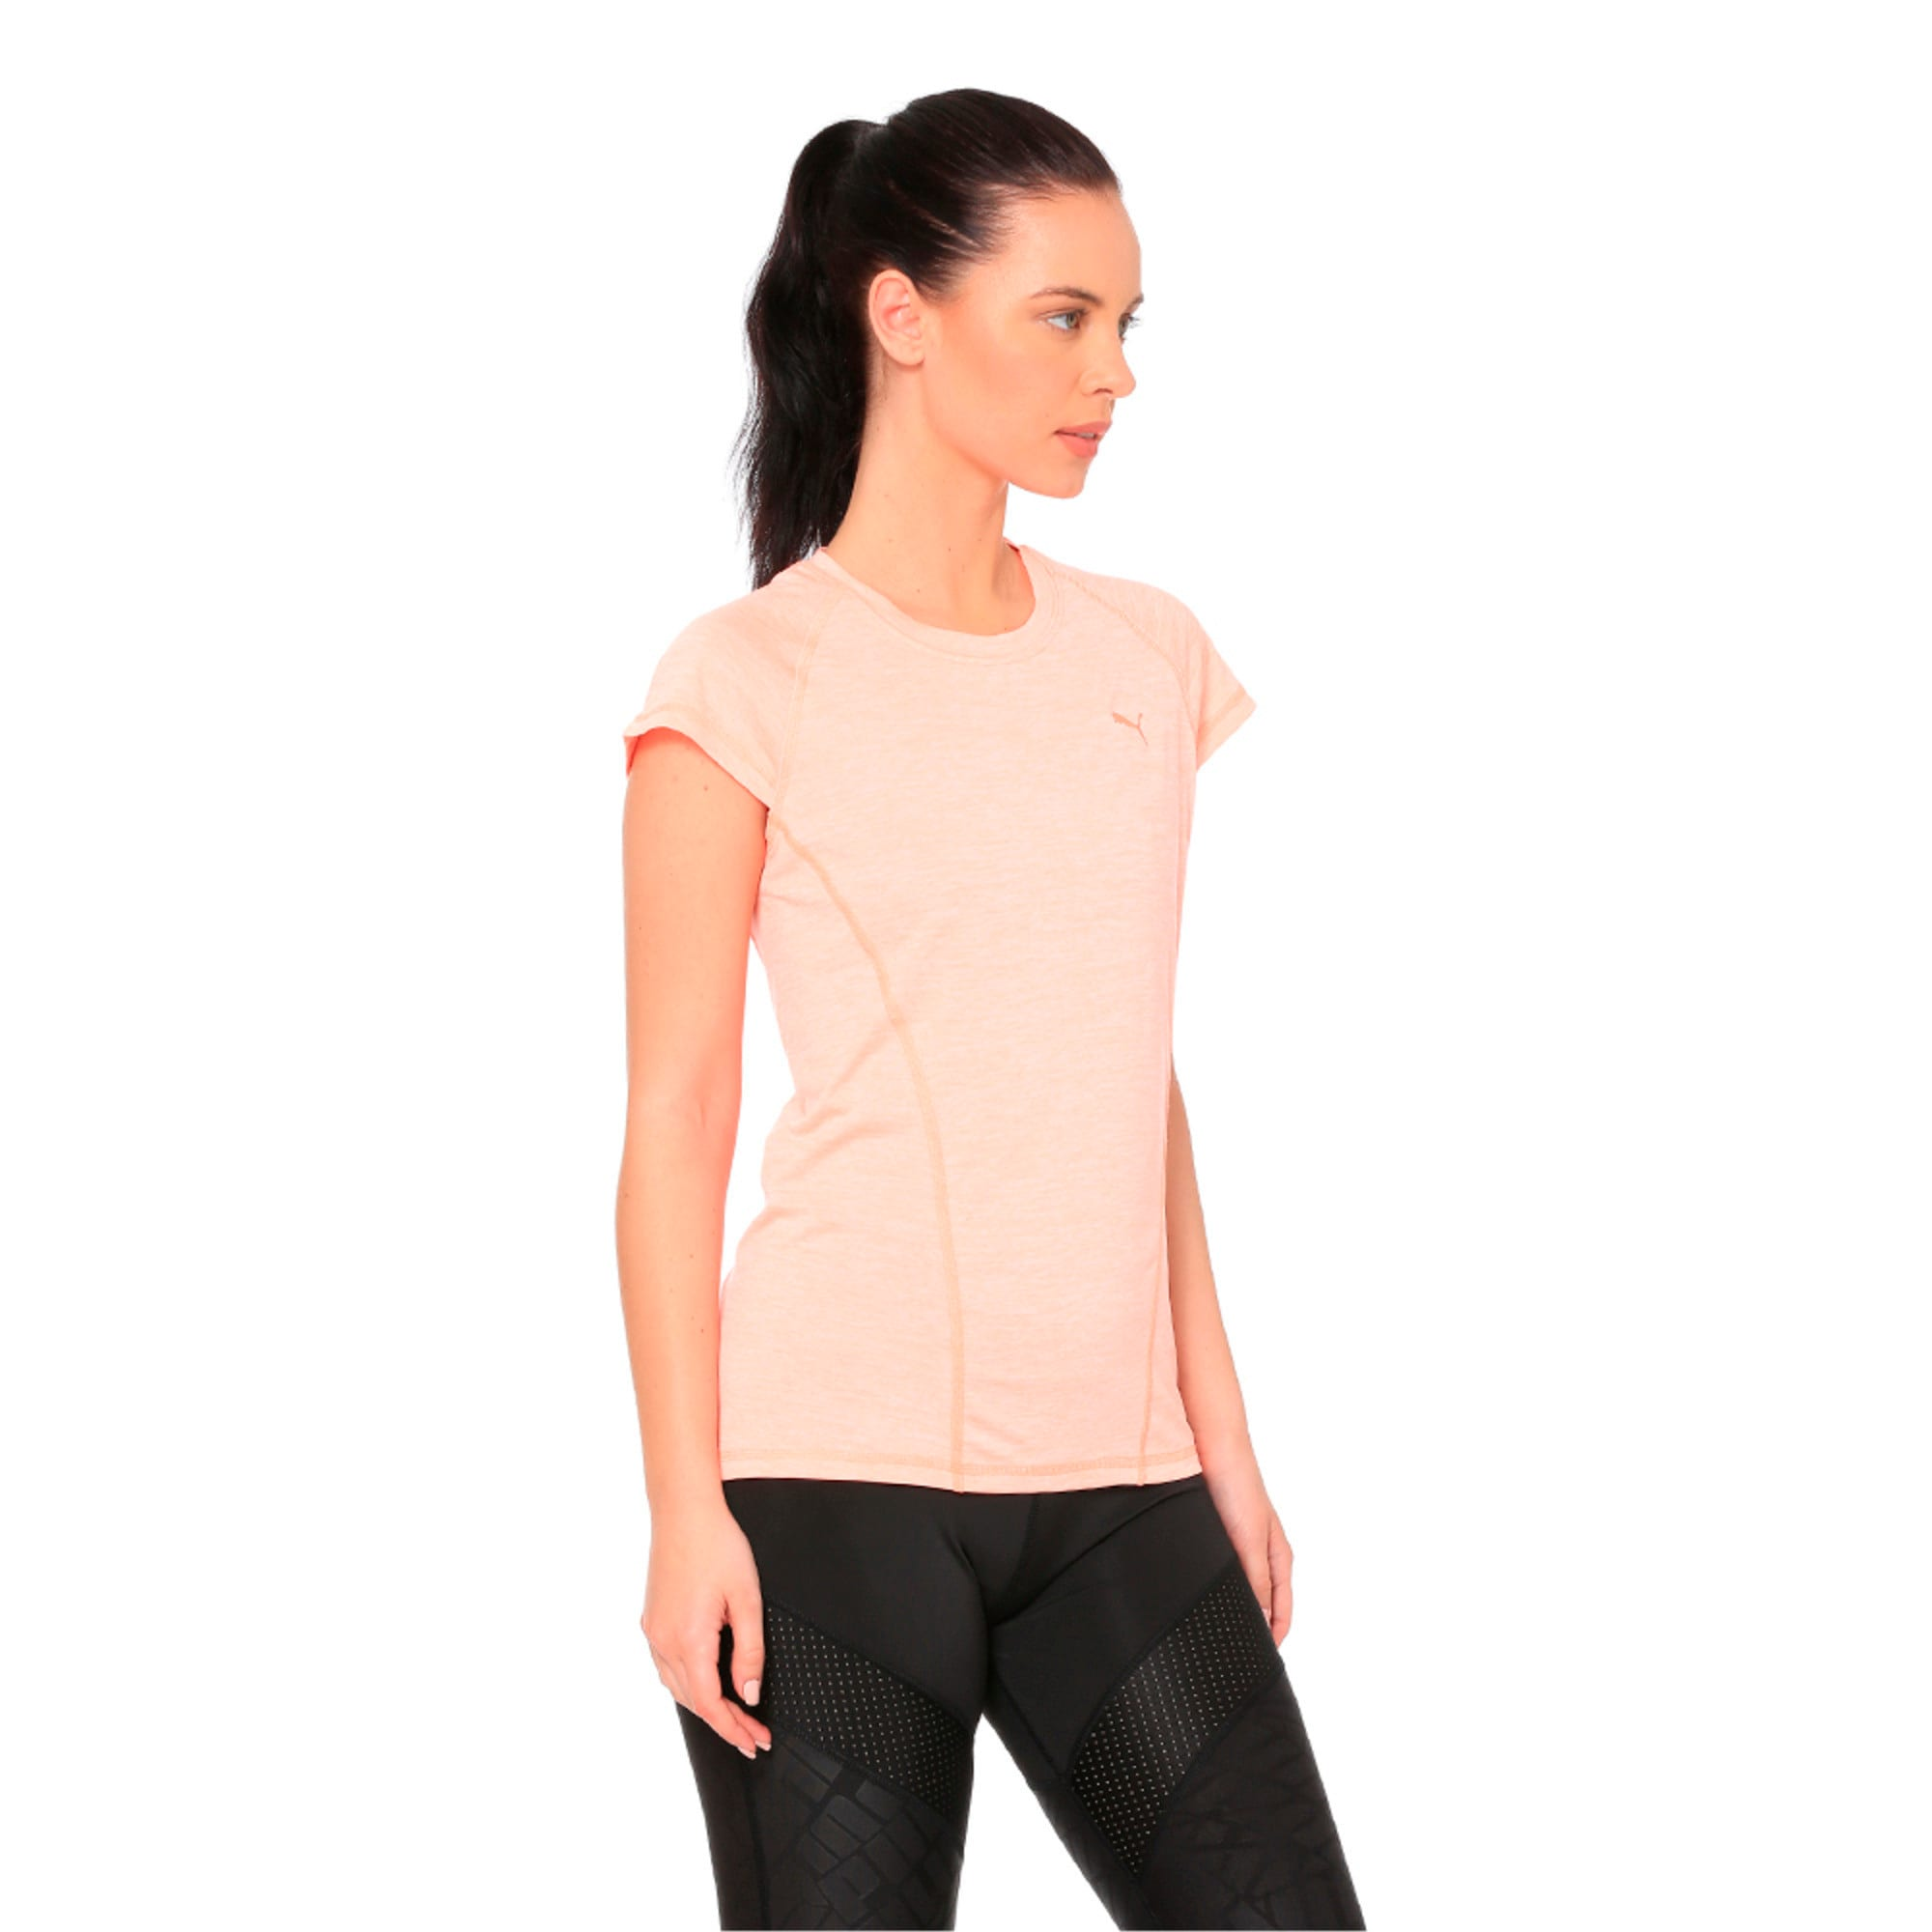 Thumbnail 2 of DeLite Tee, Bright Peach Heather, medium-IND